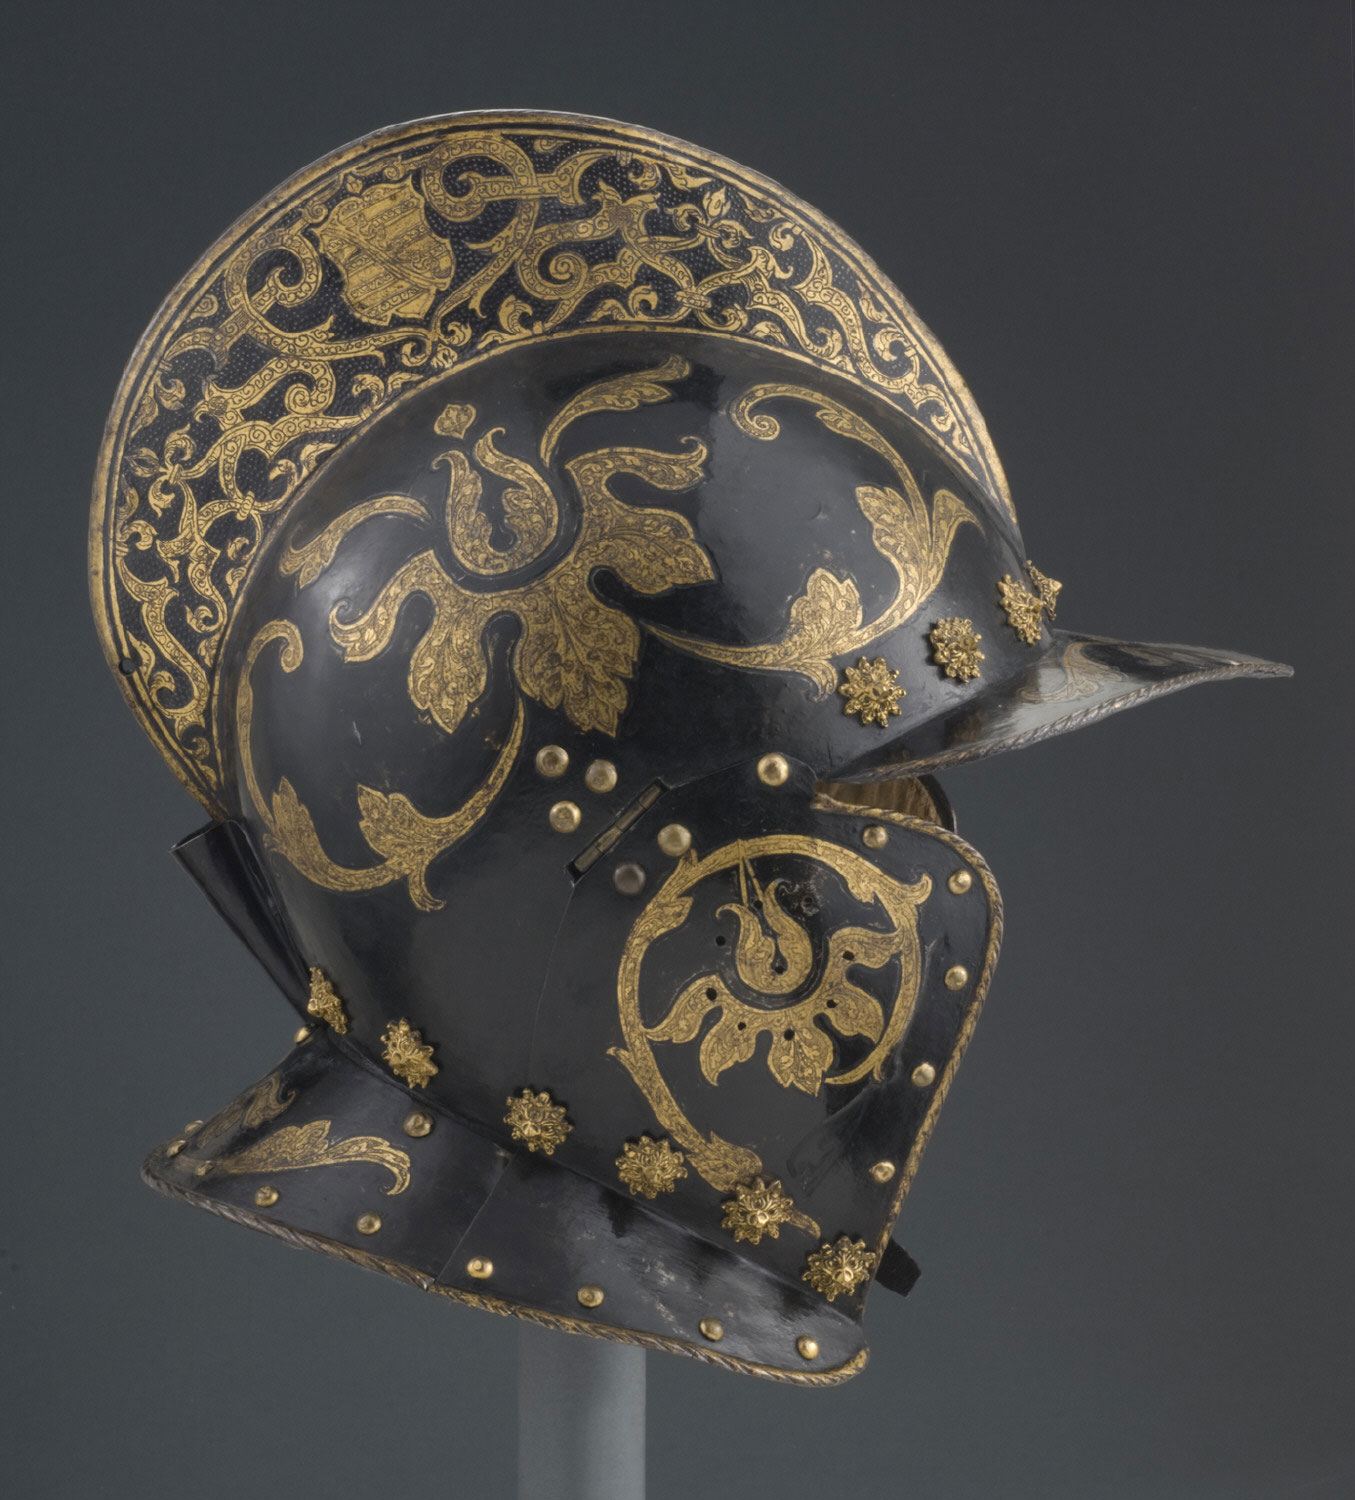 Burgonet for the Guard of Christian I of Saxony